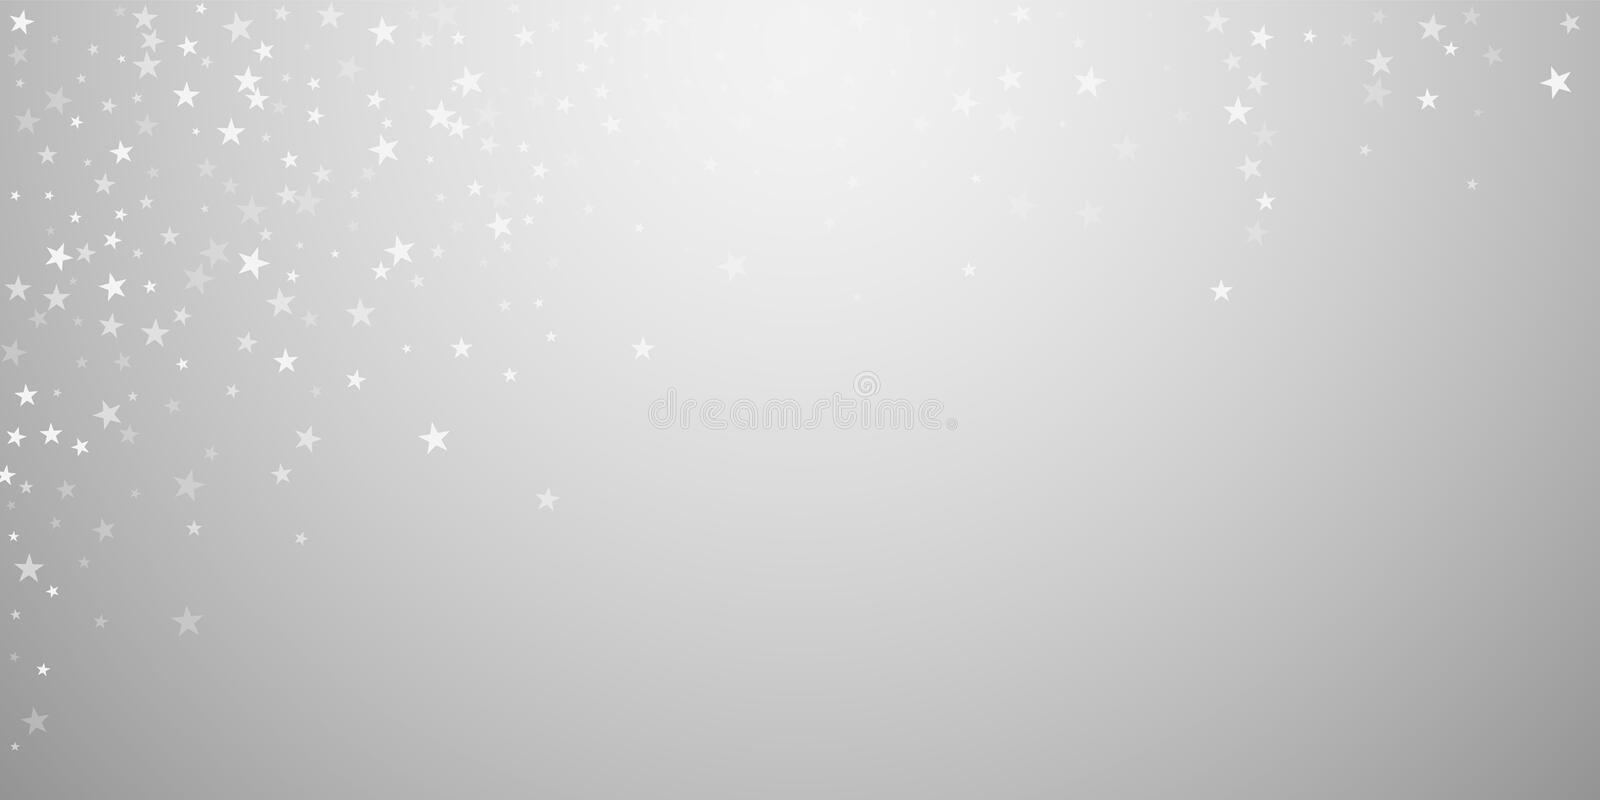 Random falling stars Christmas background. Subtle. Flying snow flakes and stars on light grey background. Authentic winter silver snowflake overlay template vector illustration